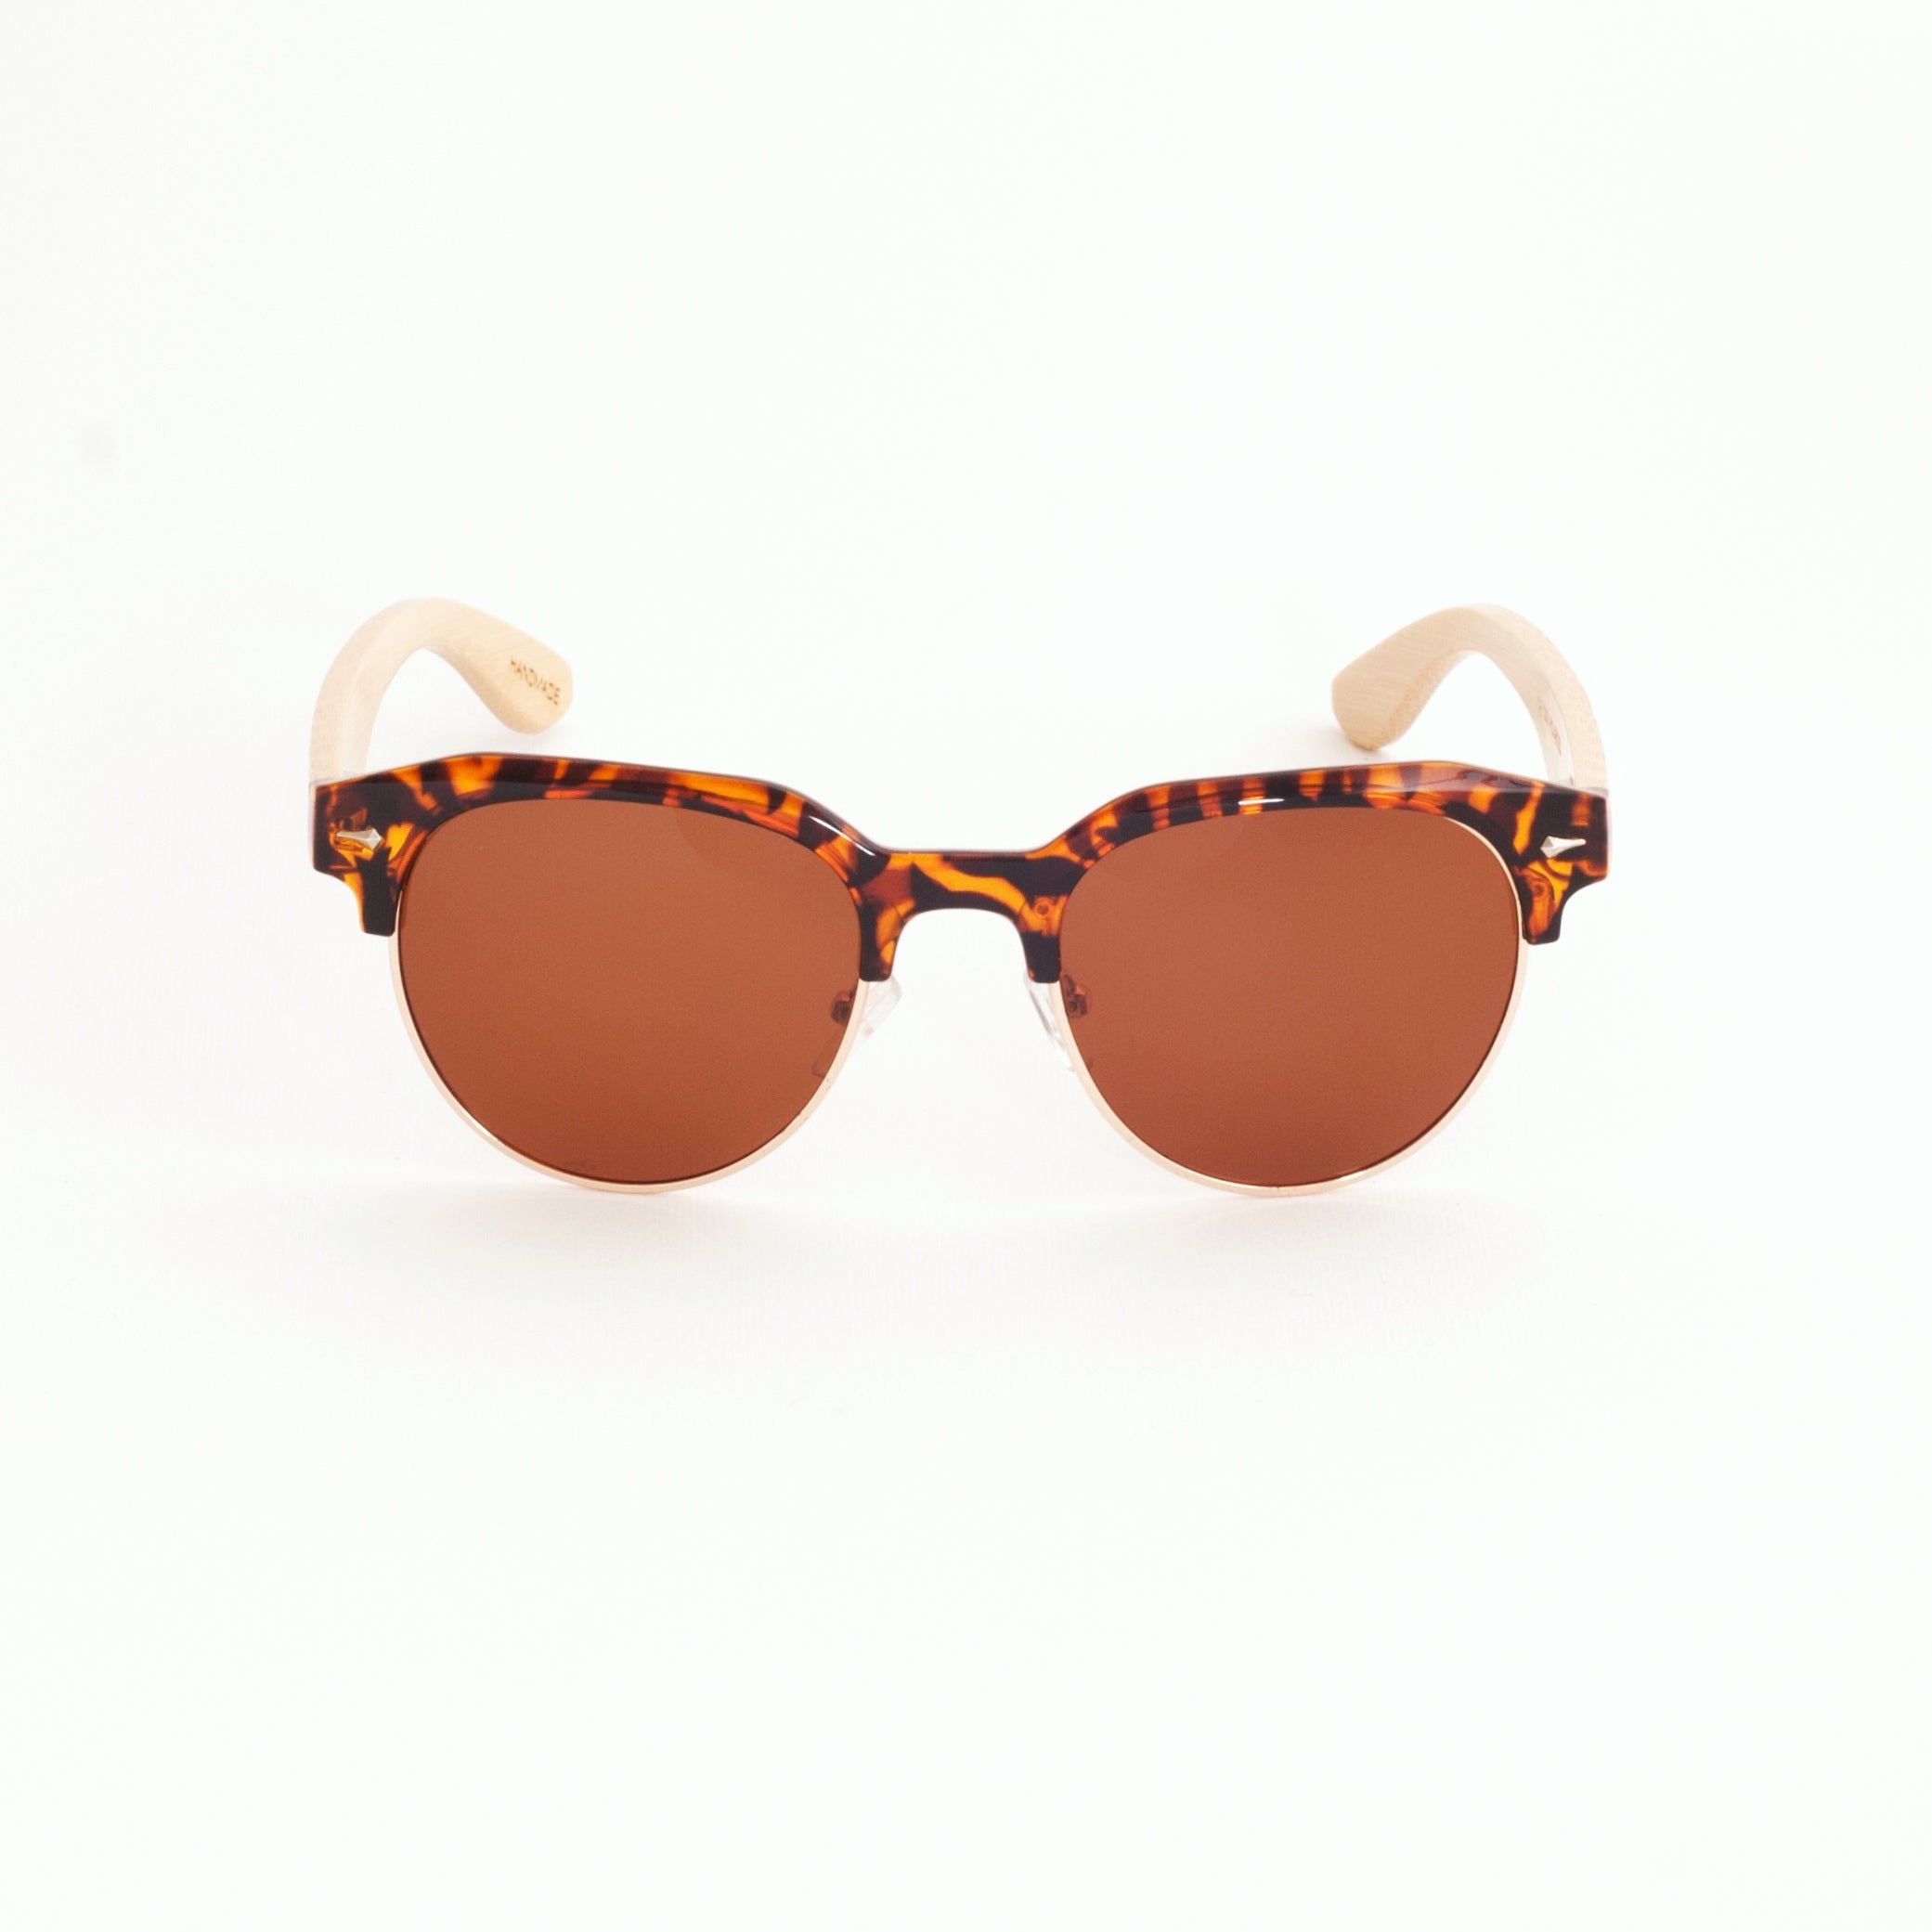 ThisGuy-Womens- Polarized-Bamboo-Wood-Sunglasses-Clubmaster-Tortoise Shell-Front